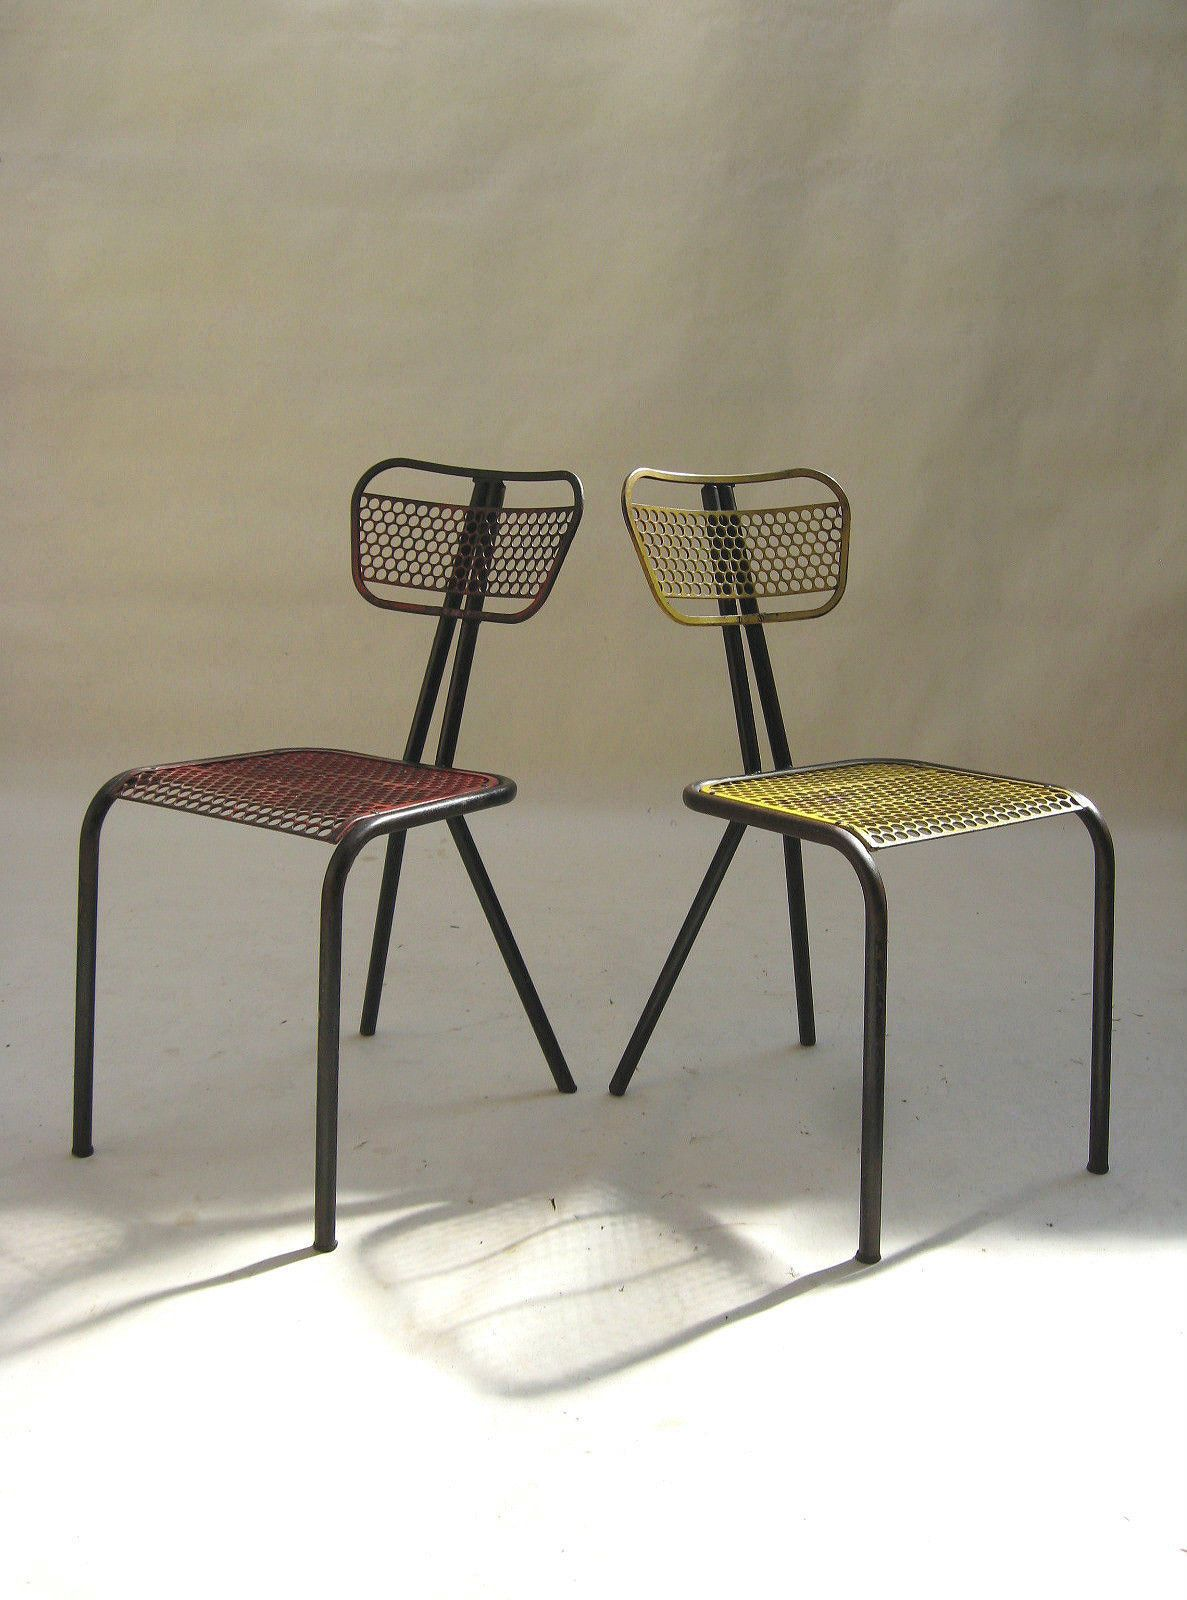 Very Rare Set Of 2 Perf Metal Chairs By Rene Malaval 1948 Prouve Mategot Era Mobilier Metal Fauteuil